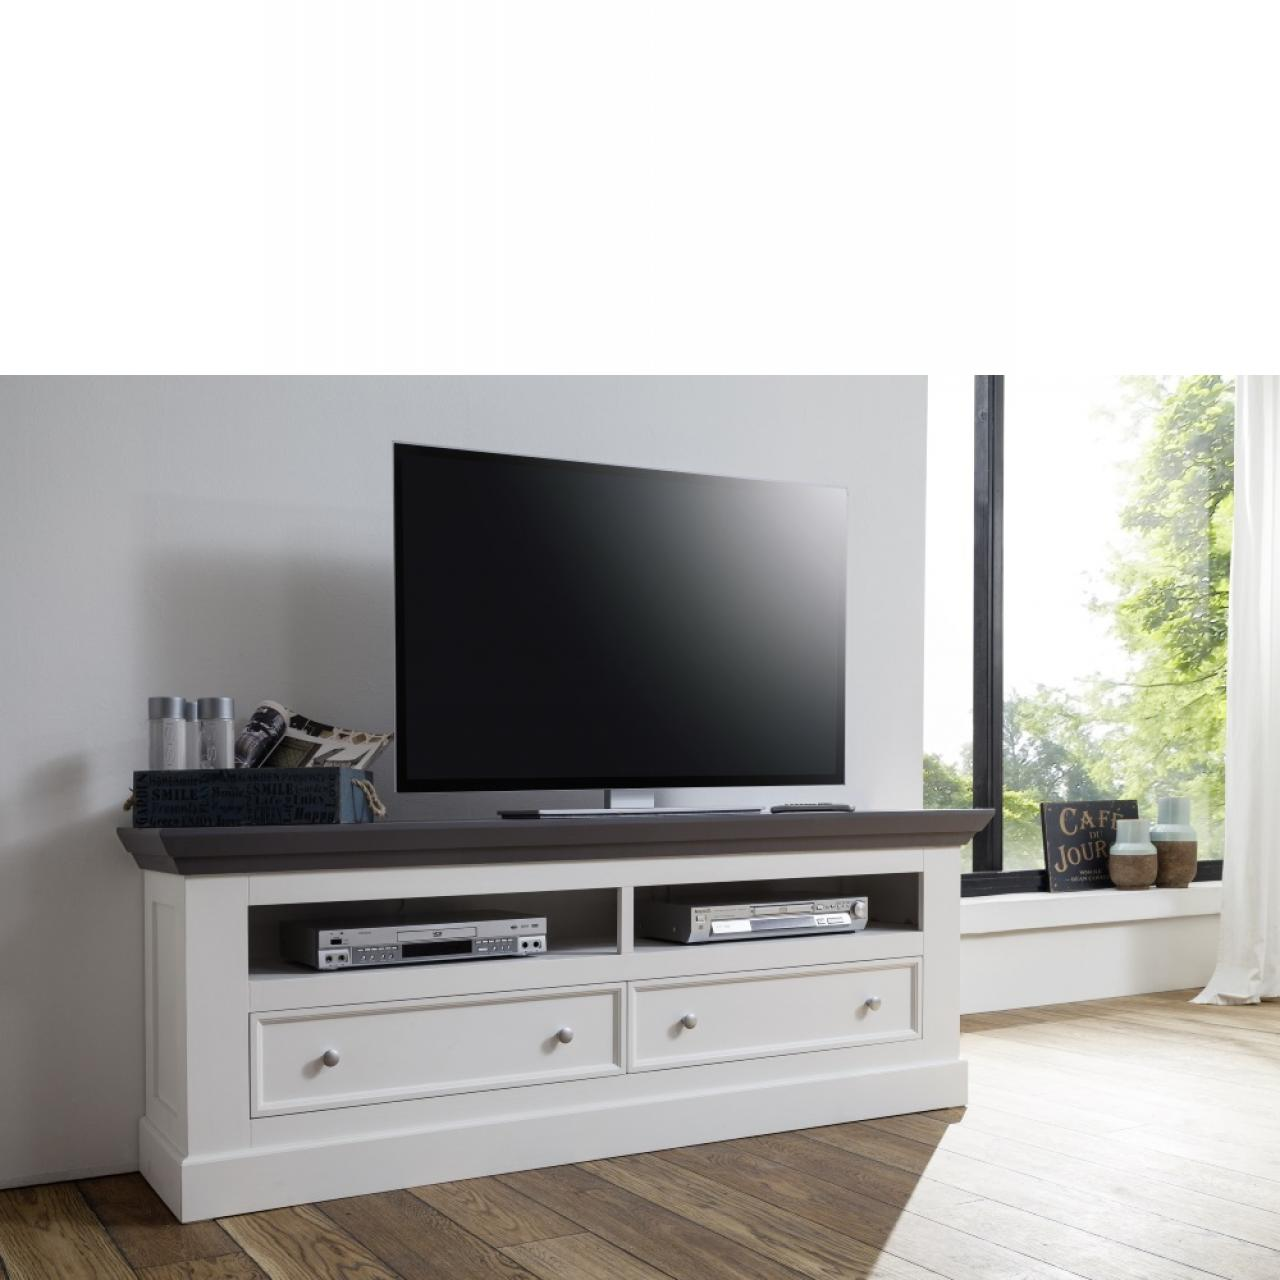 fernseher tische fabulous cheap tv tische gros eran with tv tische with fernseher tische. Black Bedroom Furniture Sets. Home Design Ideas